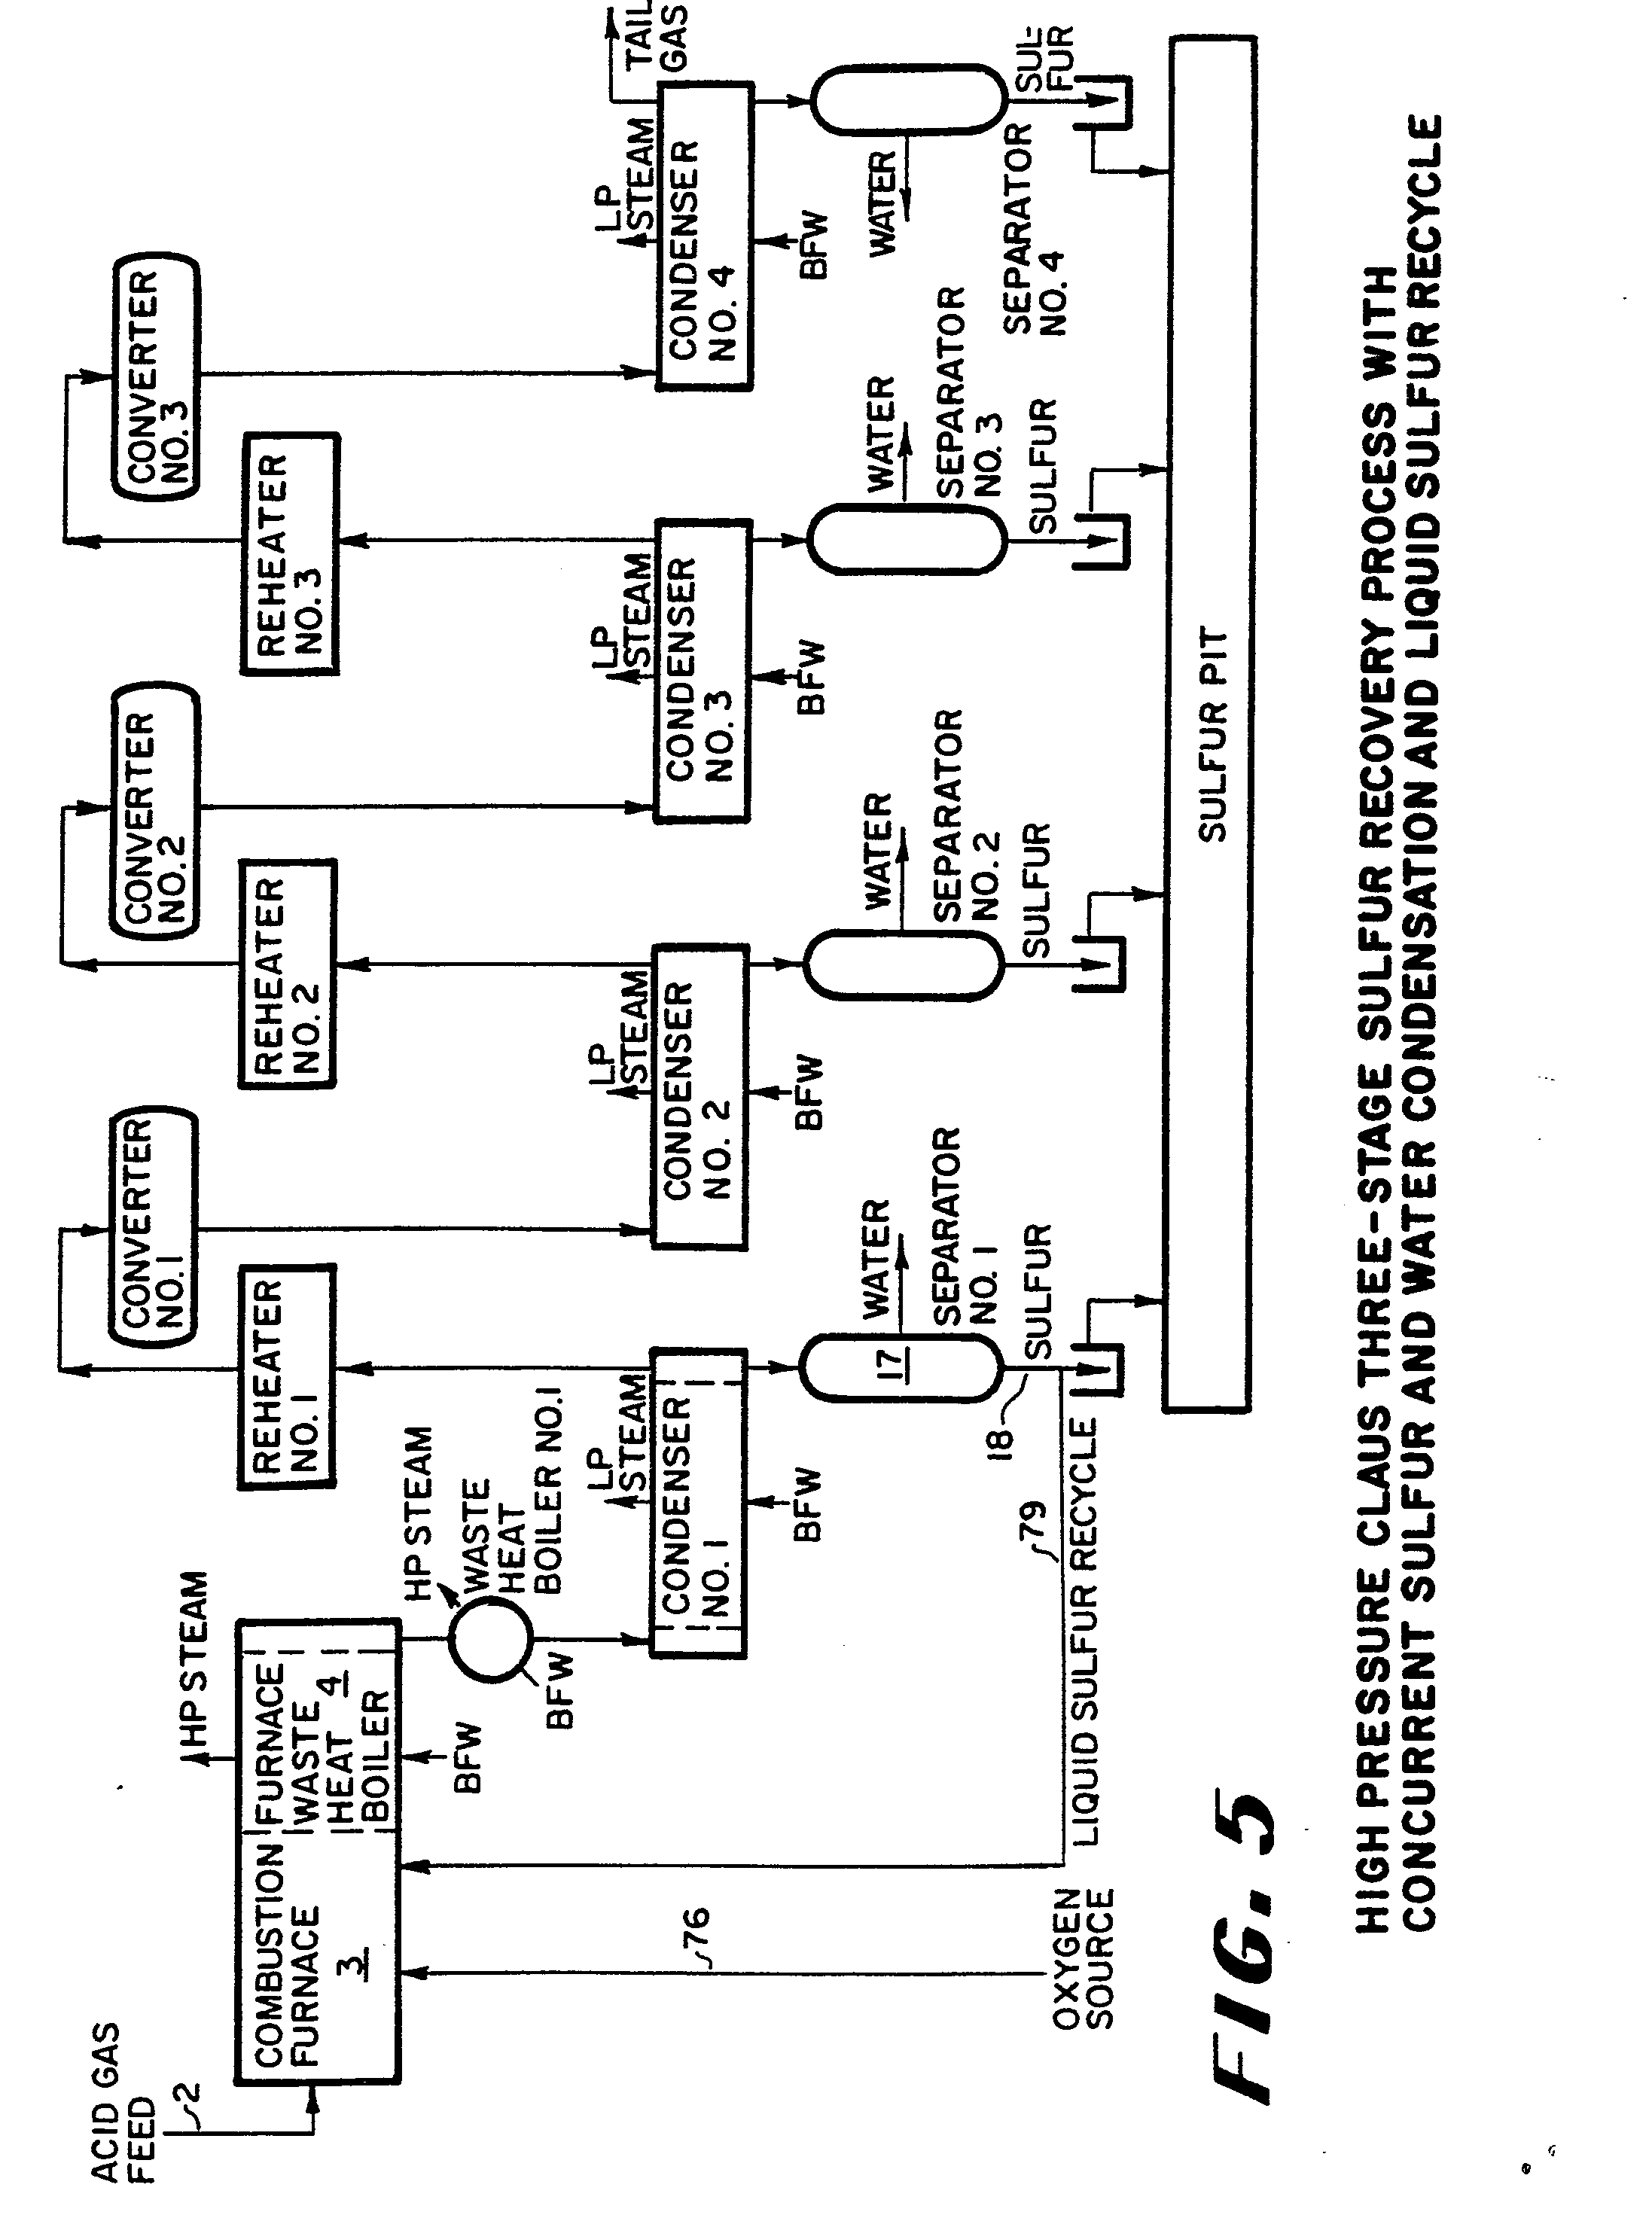 Patent EP A2 High pressure process for sulfur recovery